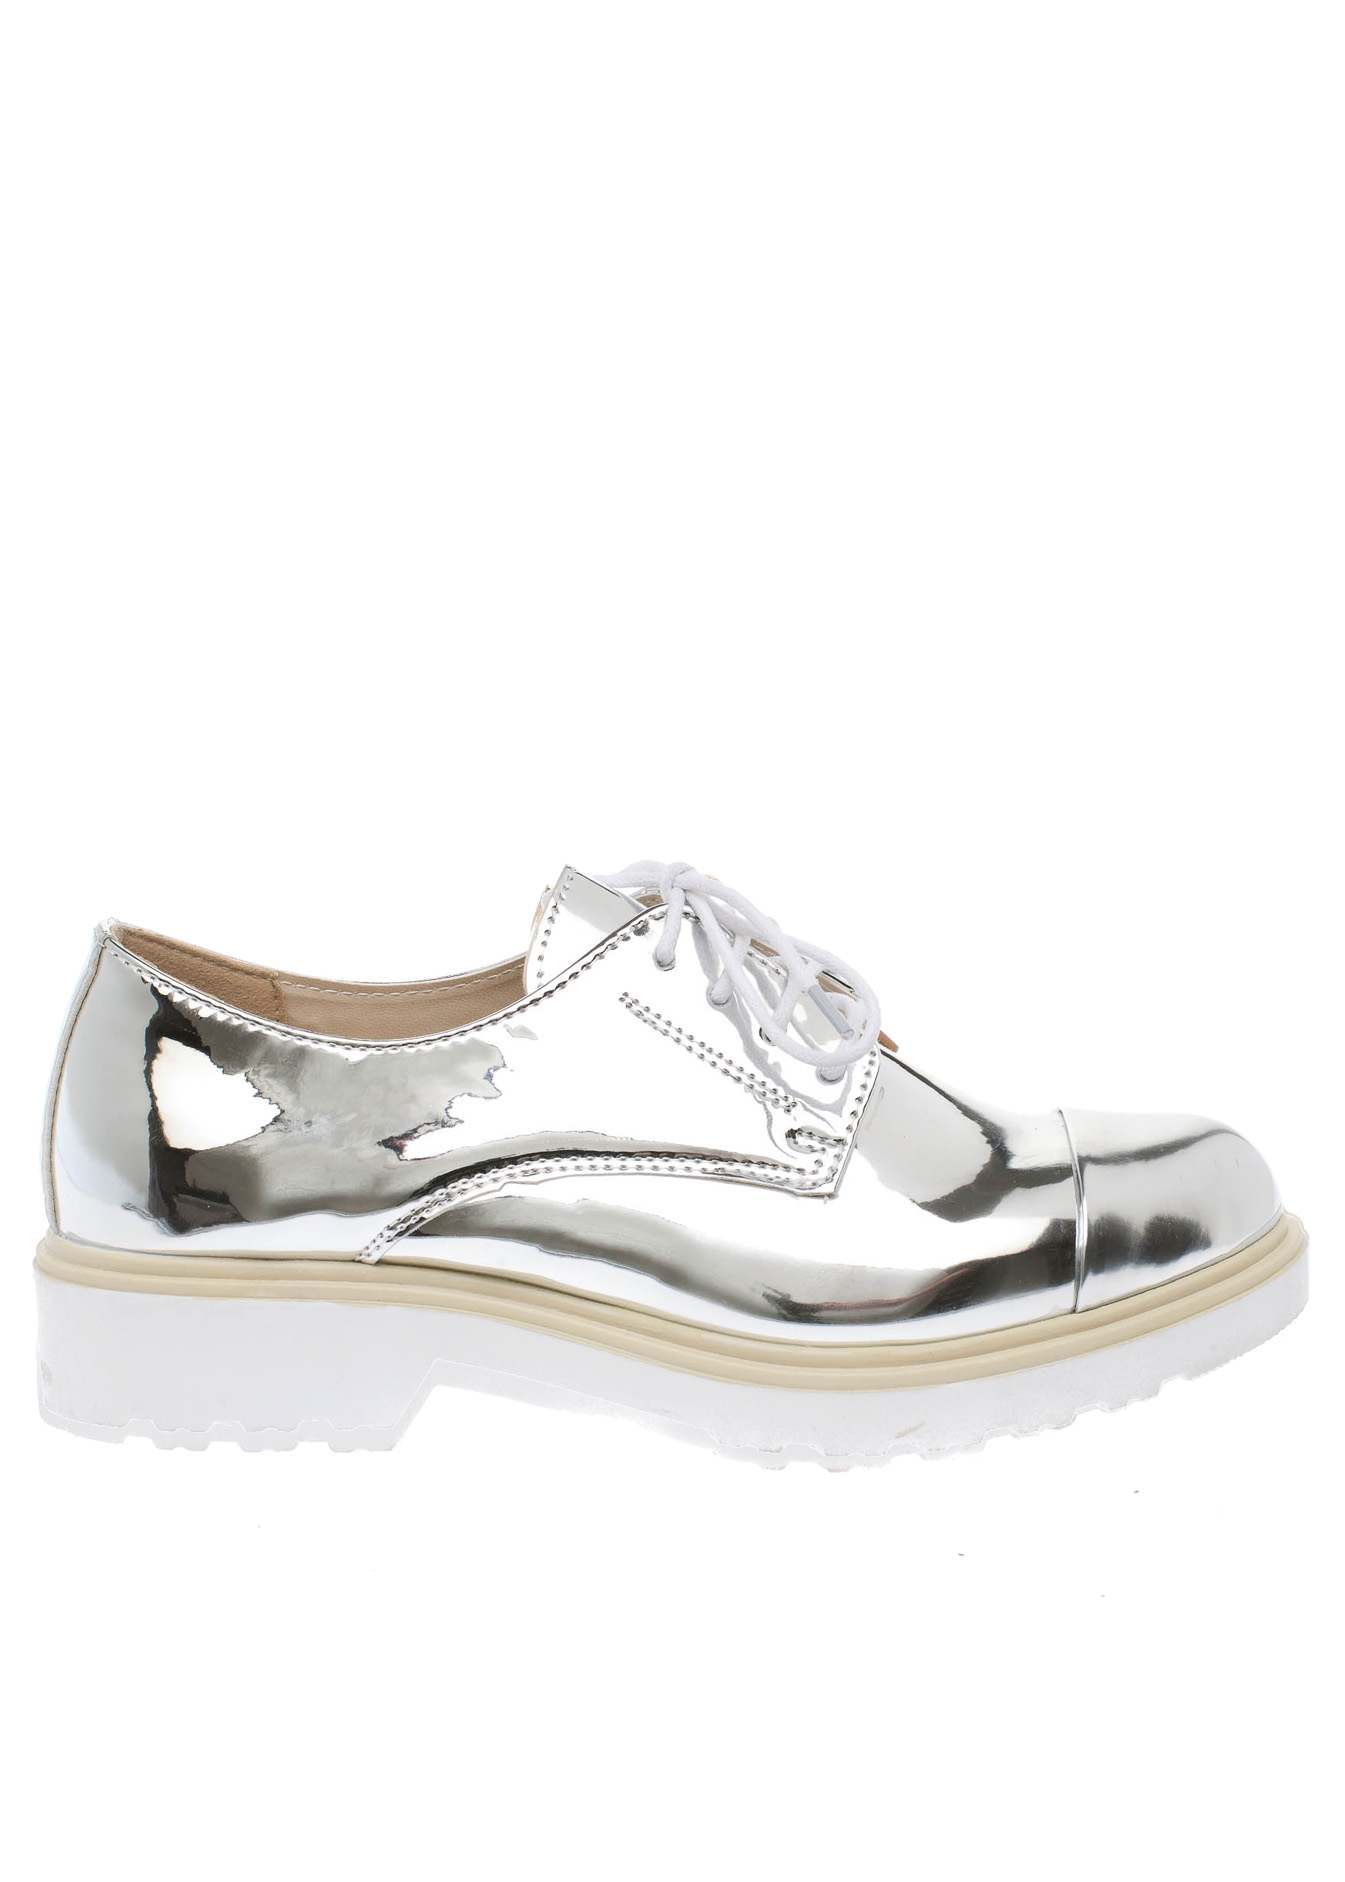 Holly metallic college shoe ασημί